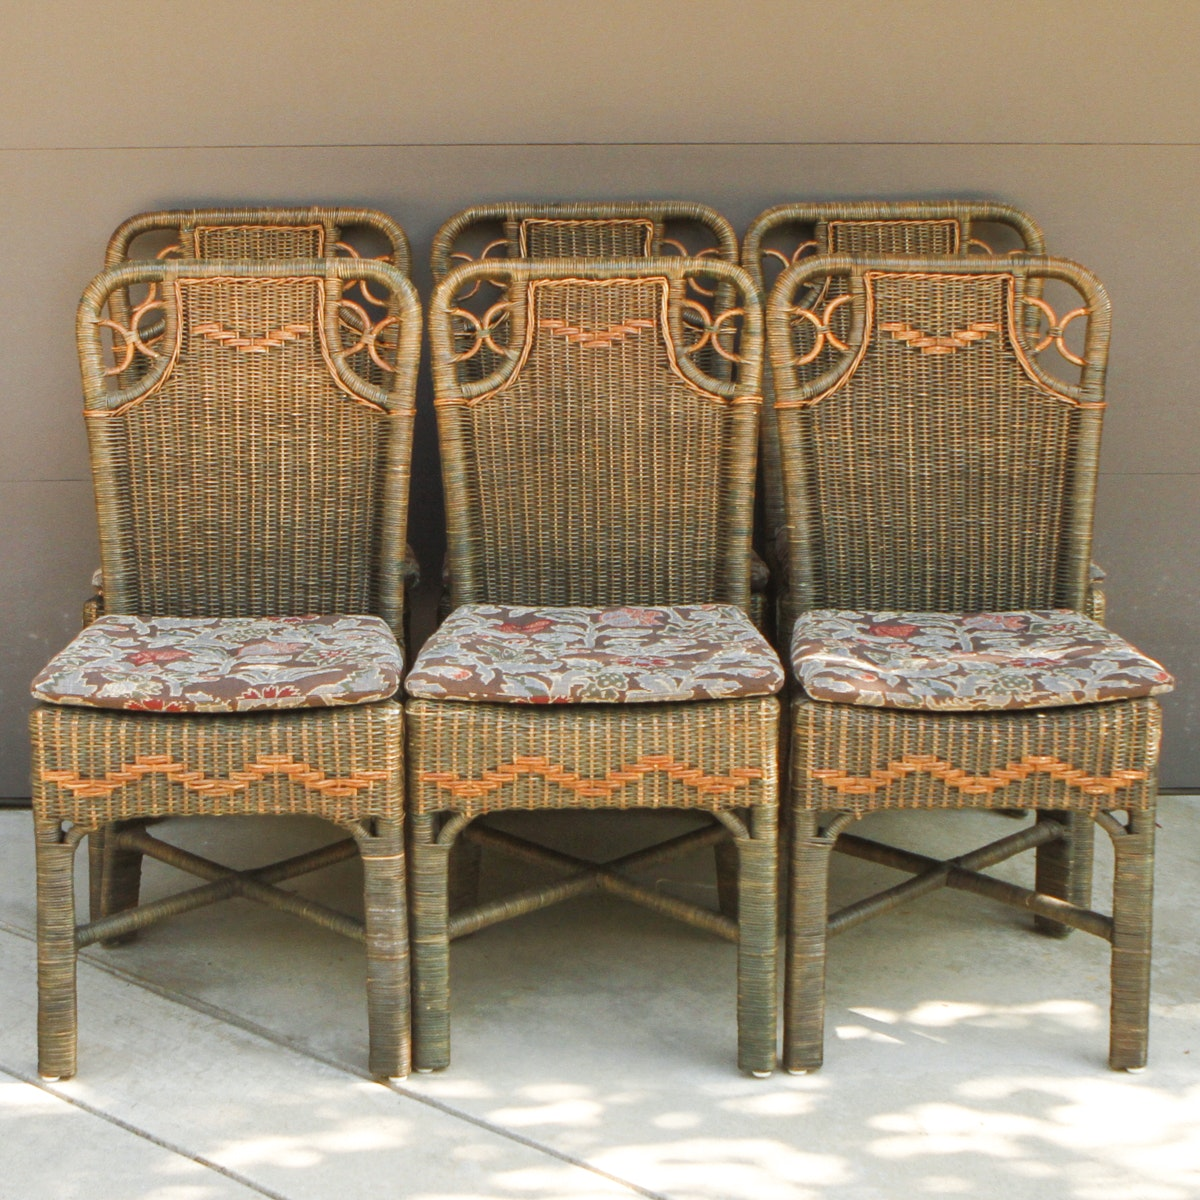 Palecek Wicker Side Chairs With Cushions ... & Palecek Wicker Side Chairs With Cushions : EBTH